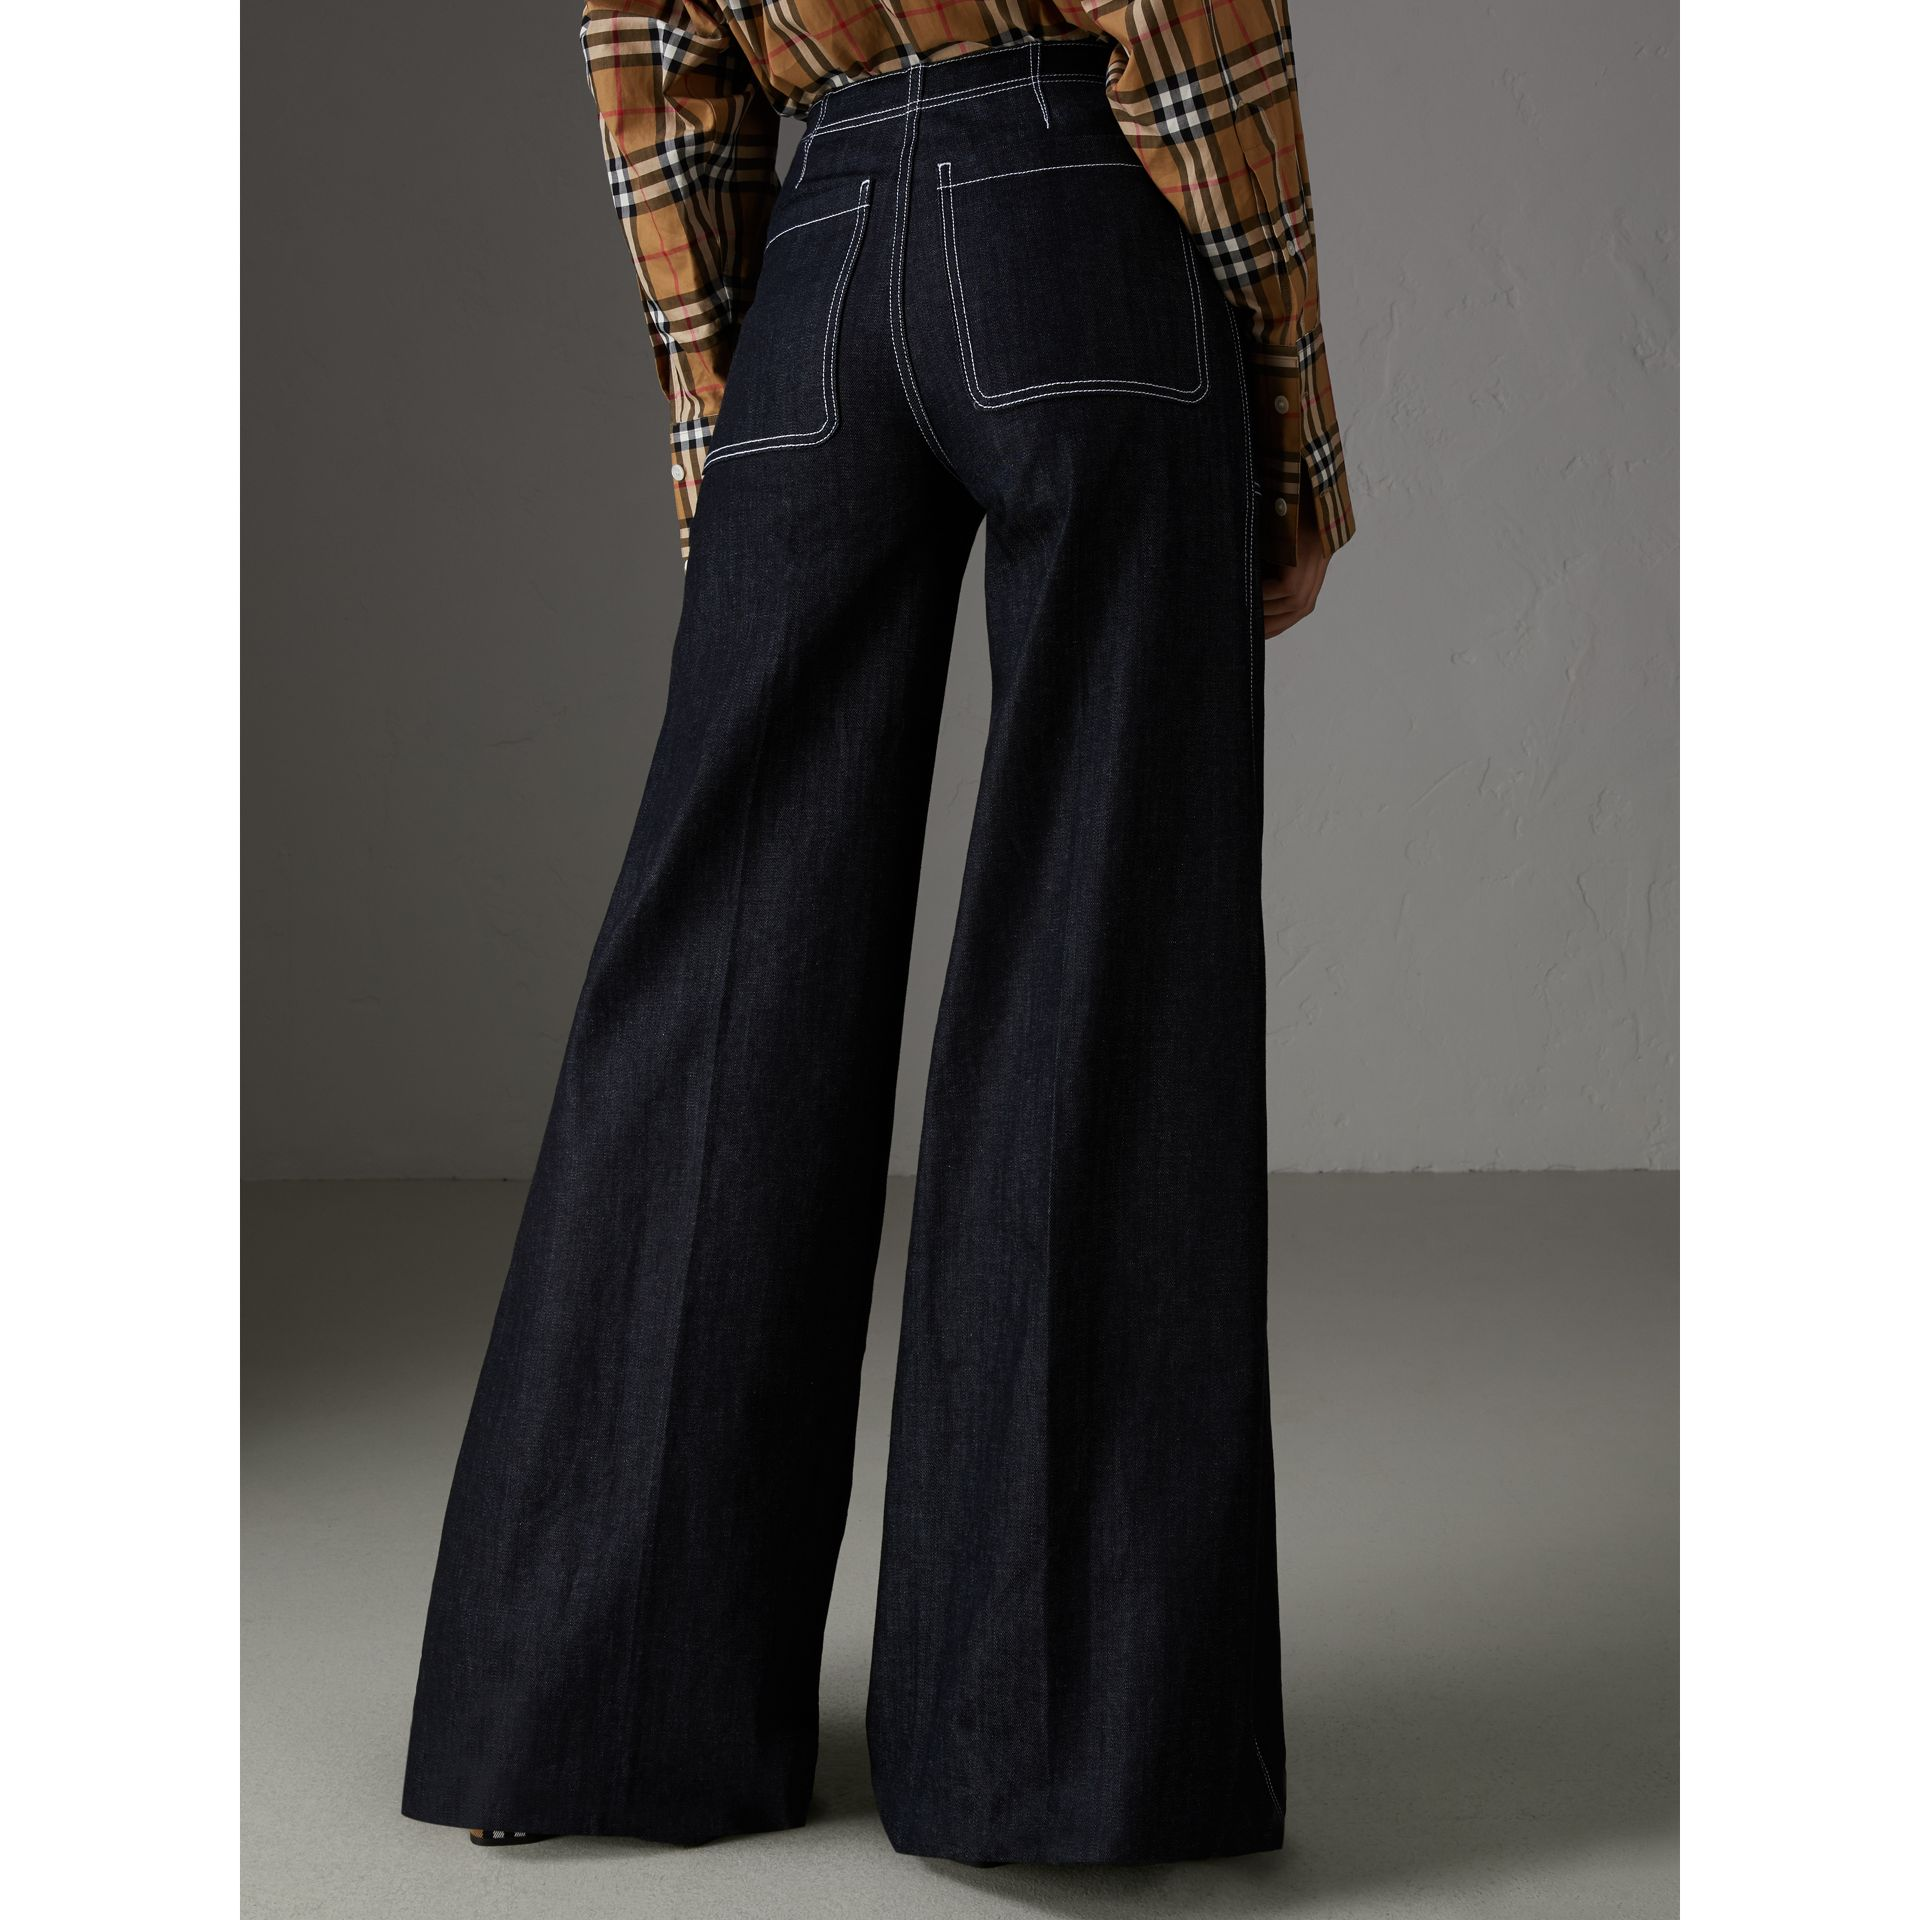 Stretch Japanese Denim Wide-leg Jeans in Steel Blue - Women | Burberry Canada - gallery image 2